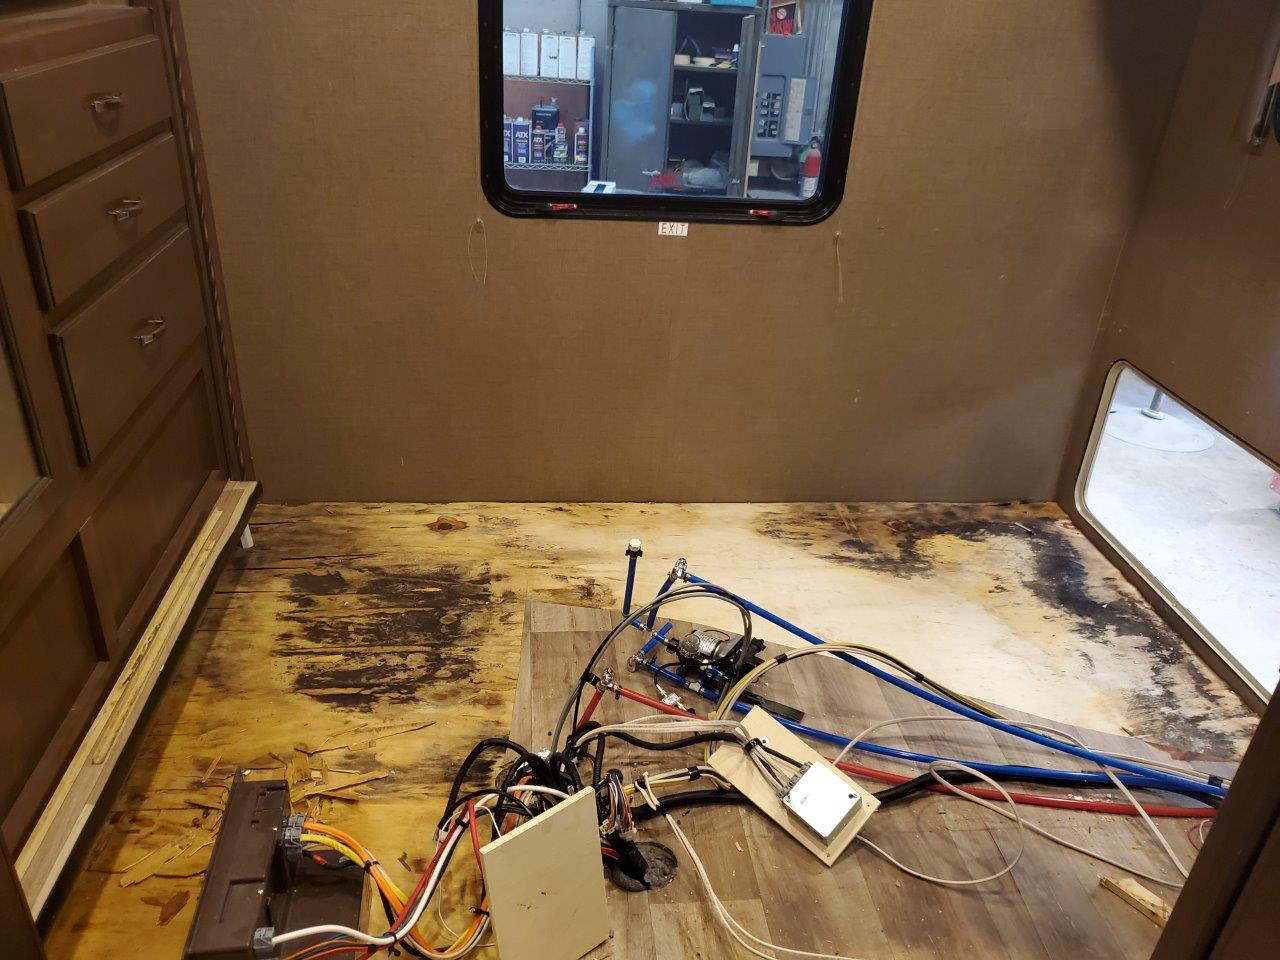 A leaking toilet can cause serious damage to the floor of your RV leading to major repairs.